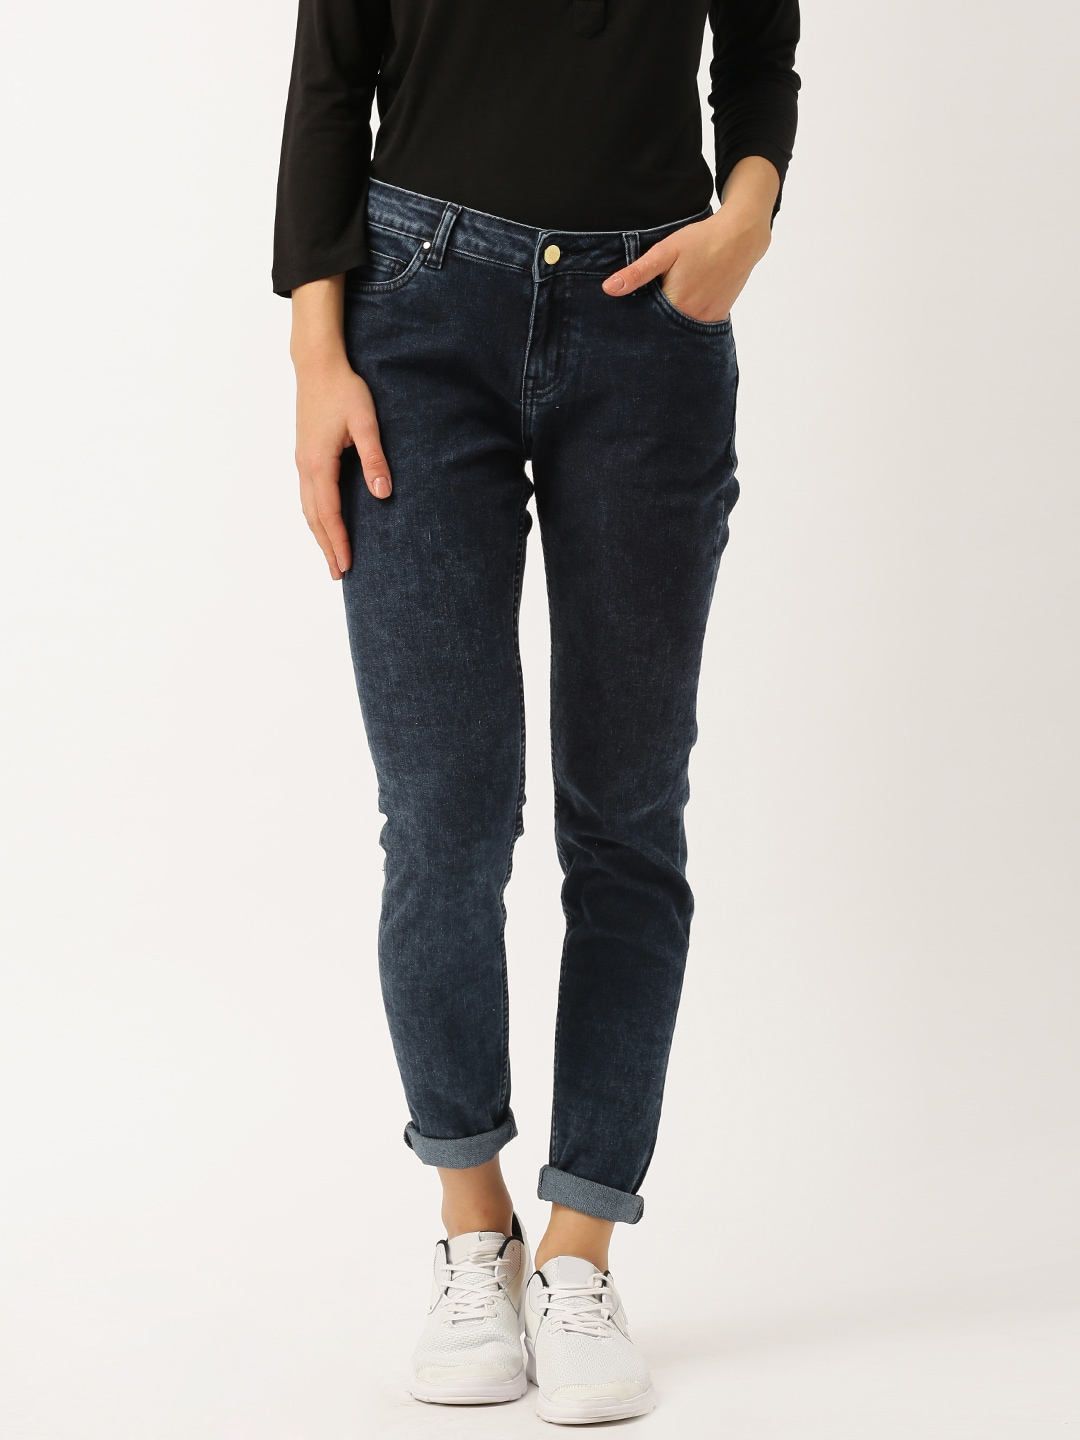 DressBerry Blue Skinny Fit Stretchable Jeans image